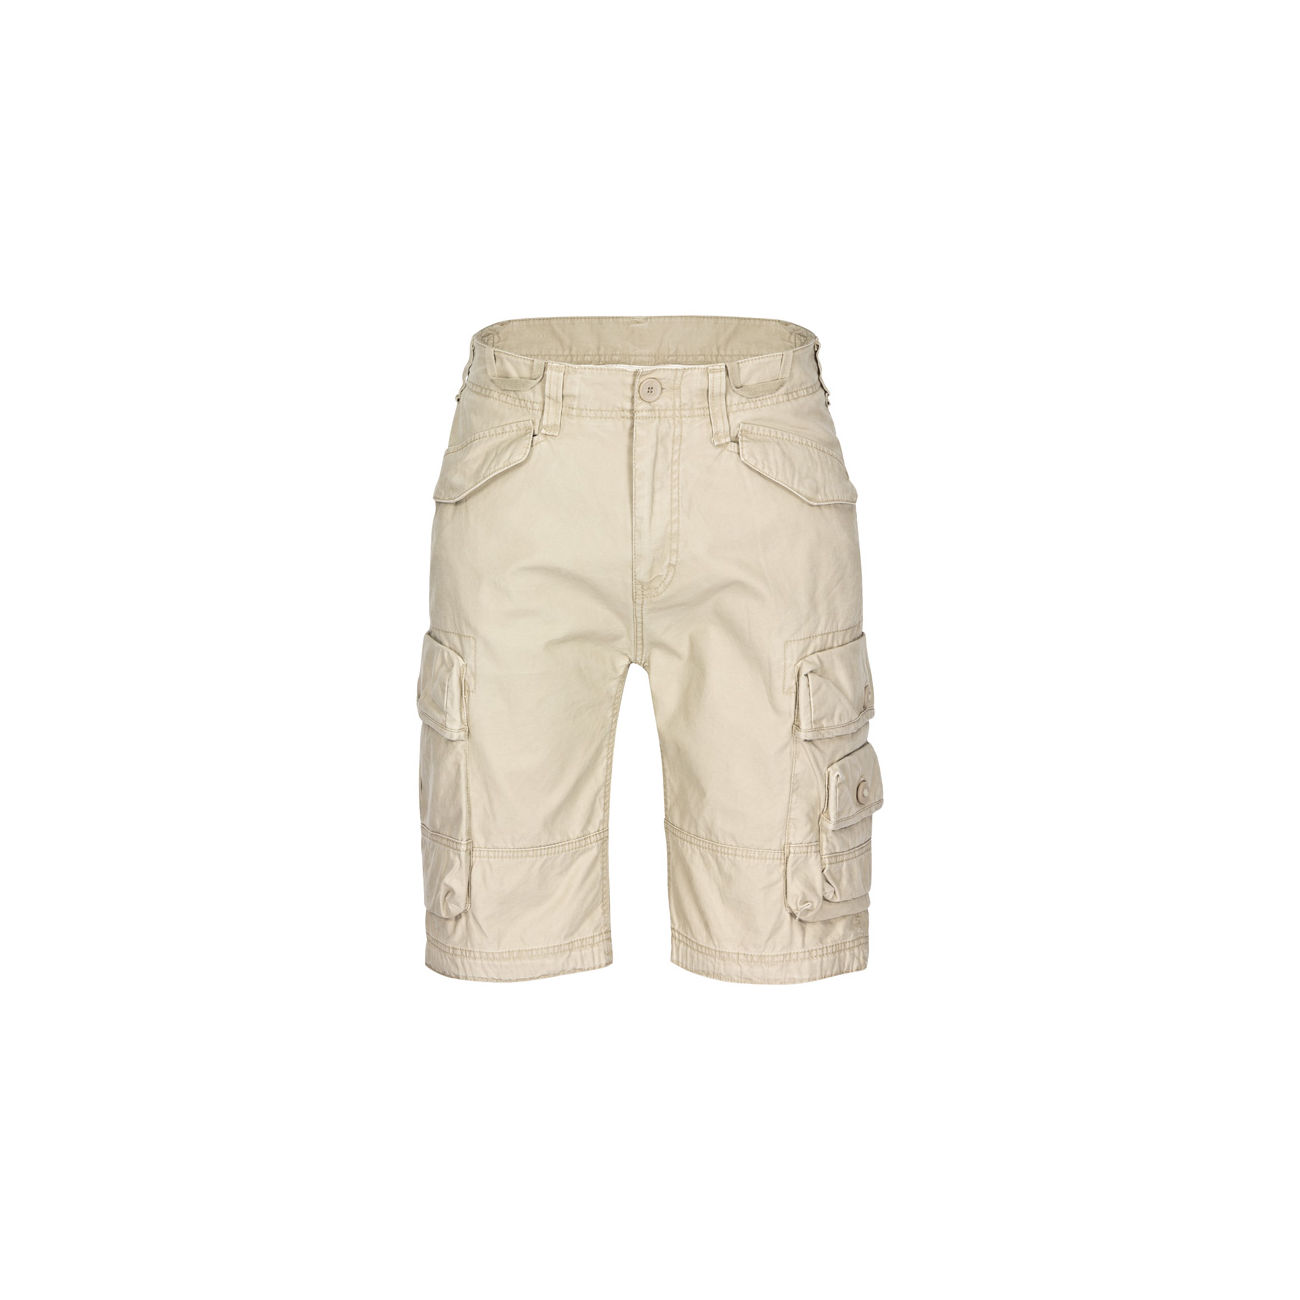 Vintage Industries Shore Short beige 0